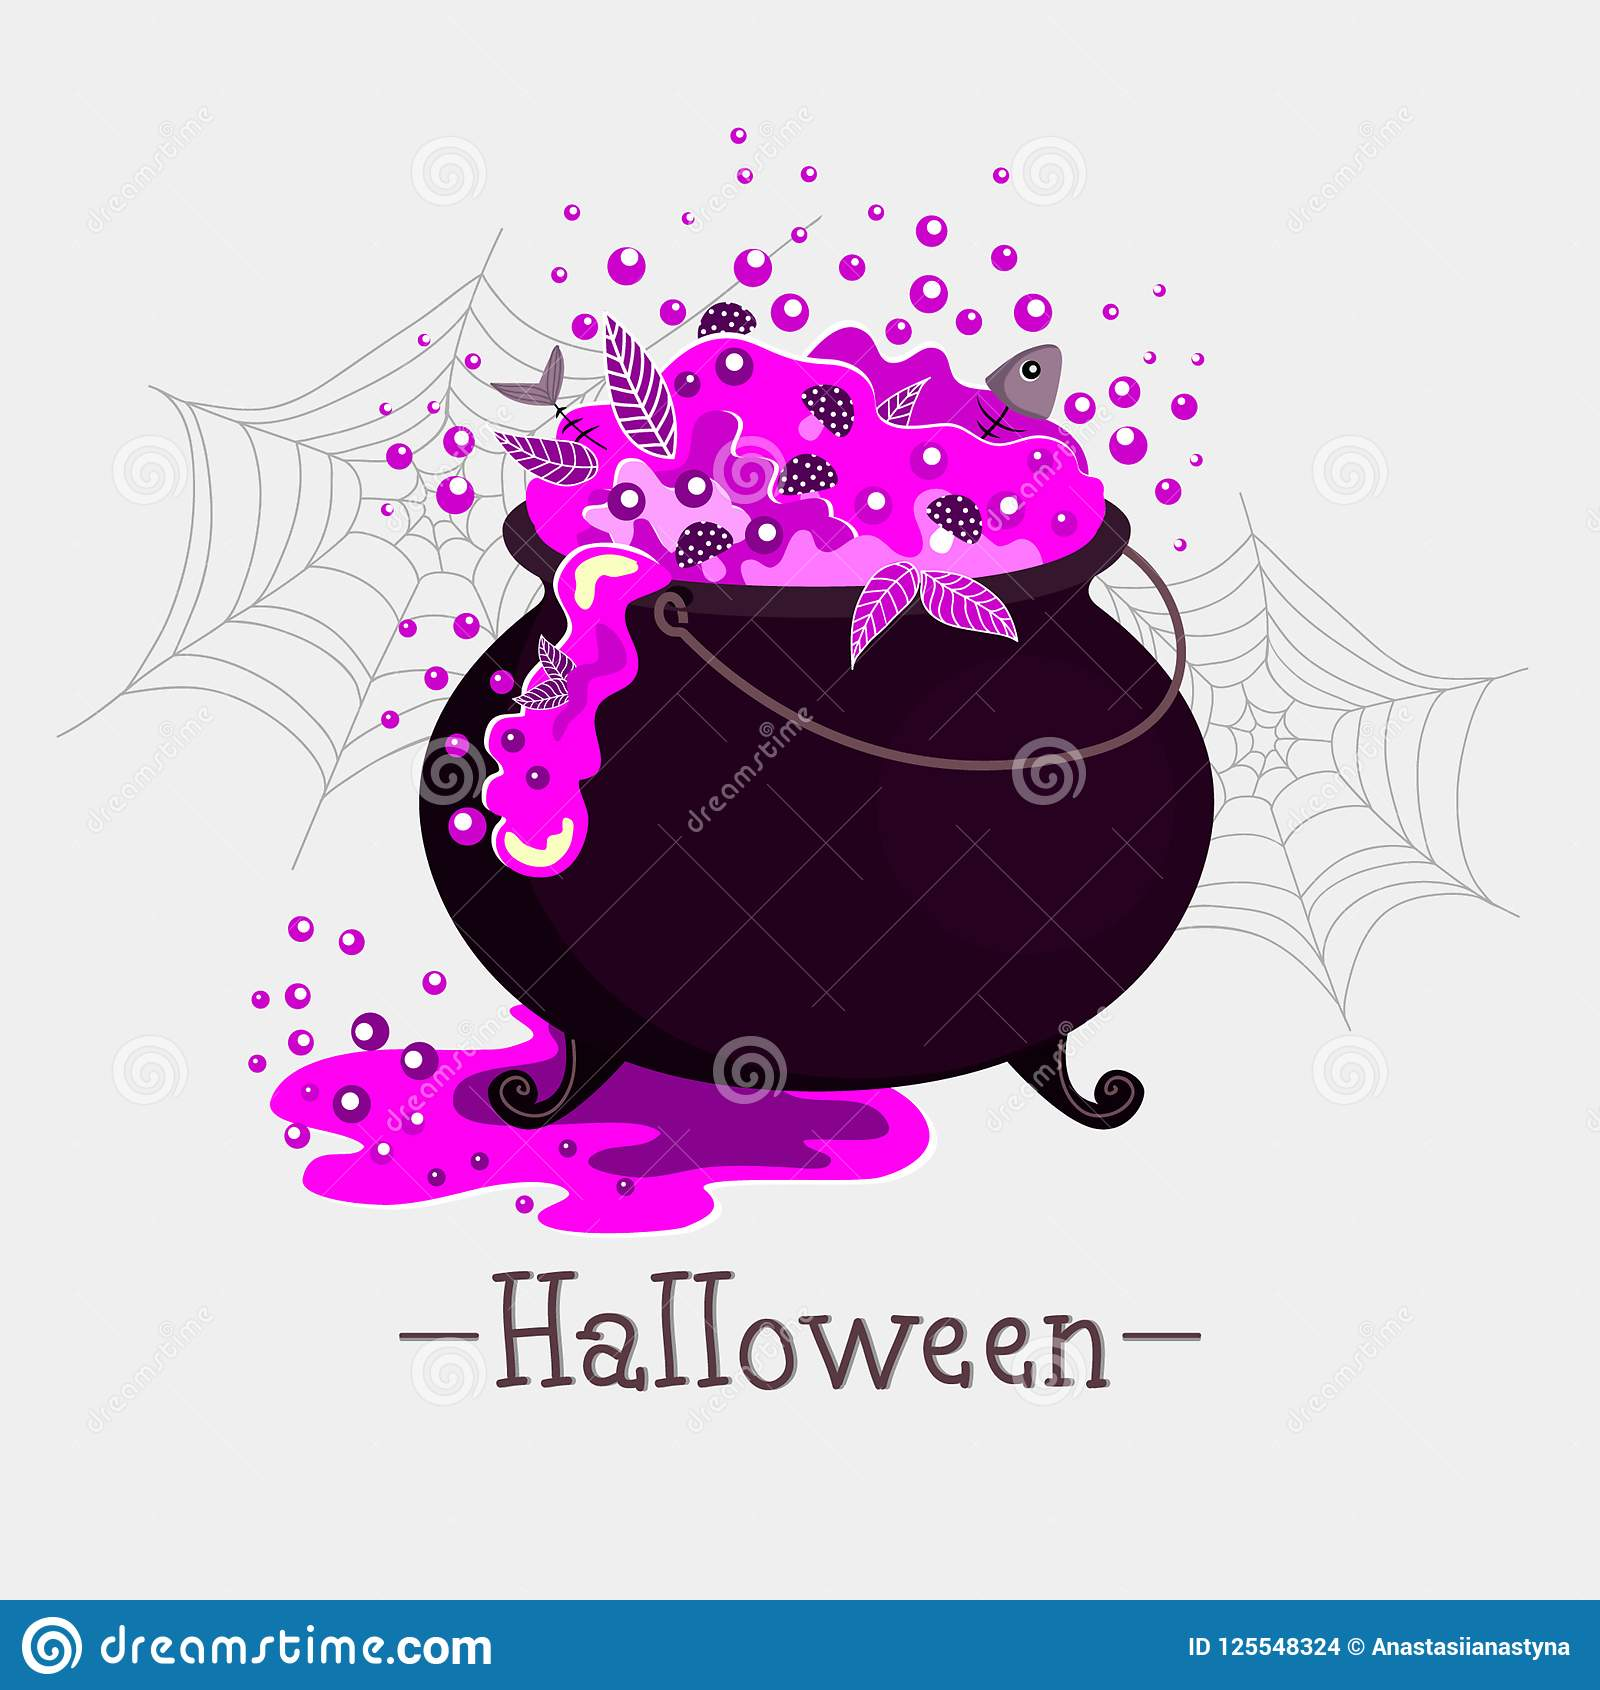 illustration for halloween boiling purple drink with mushrooms leaves and fish bones in cauldron lettering